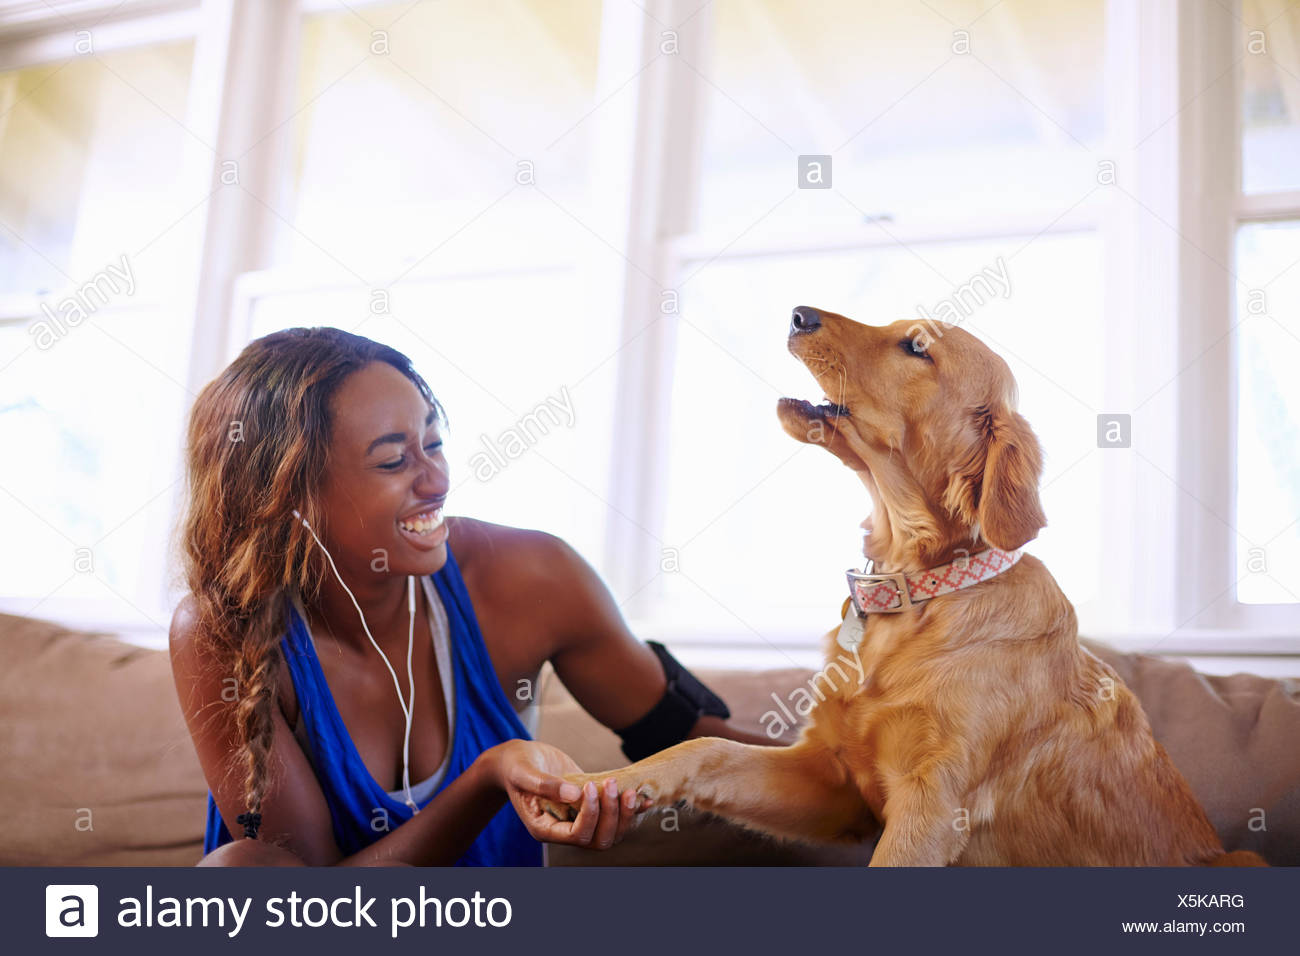 Young woman taking a training break, petting dog in sitting room - Stock Image